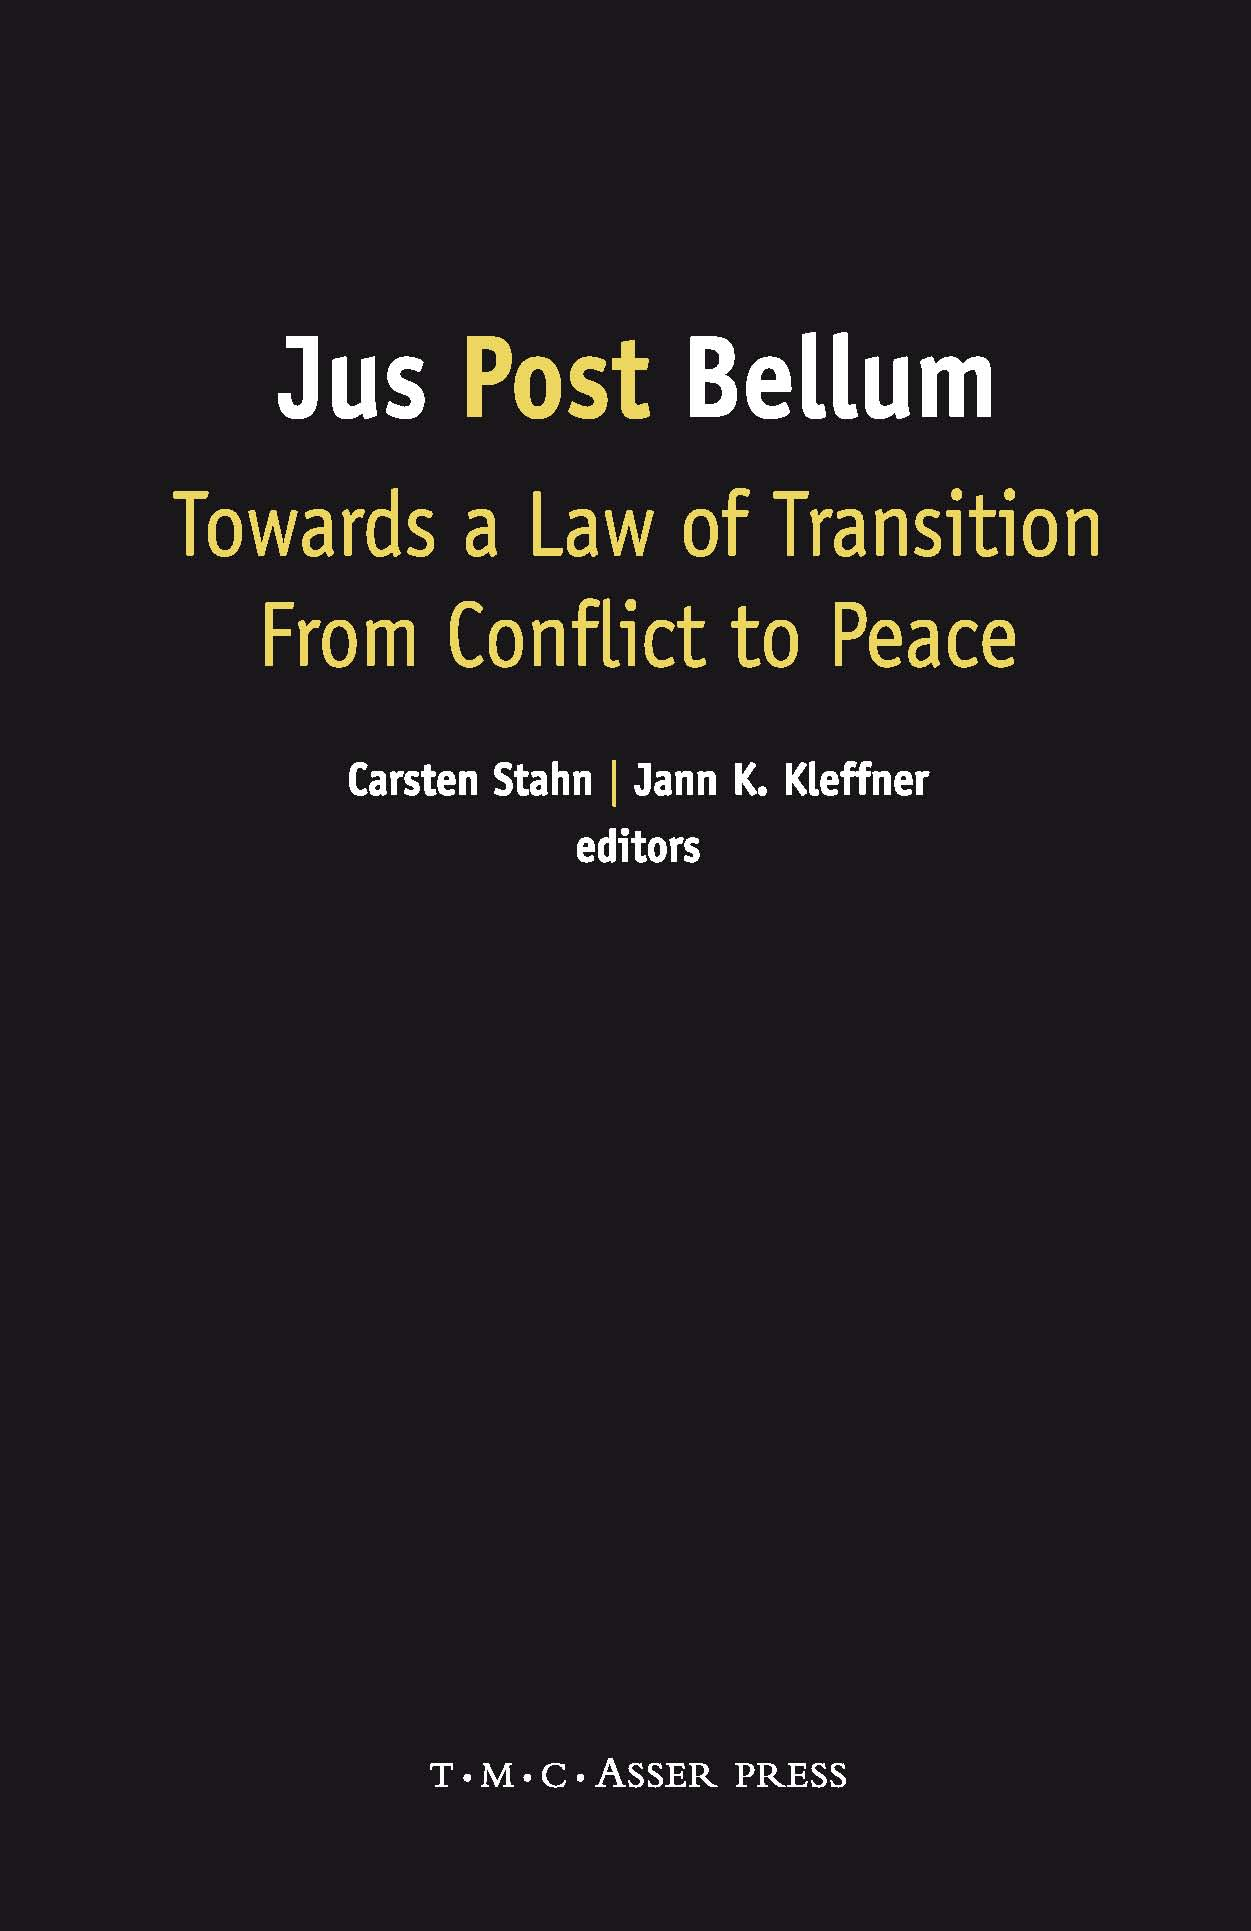 Jus Post Bellum - Towards a Law of Transition From Conflict to Peace